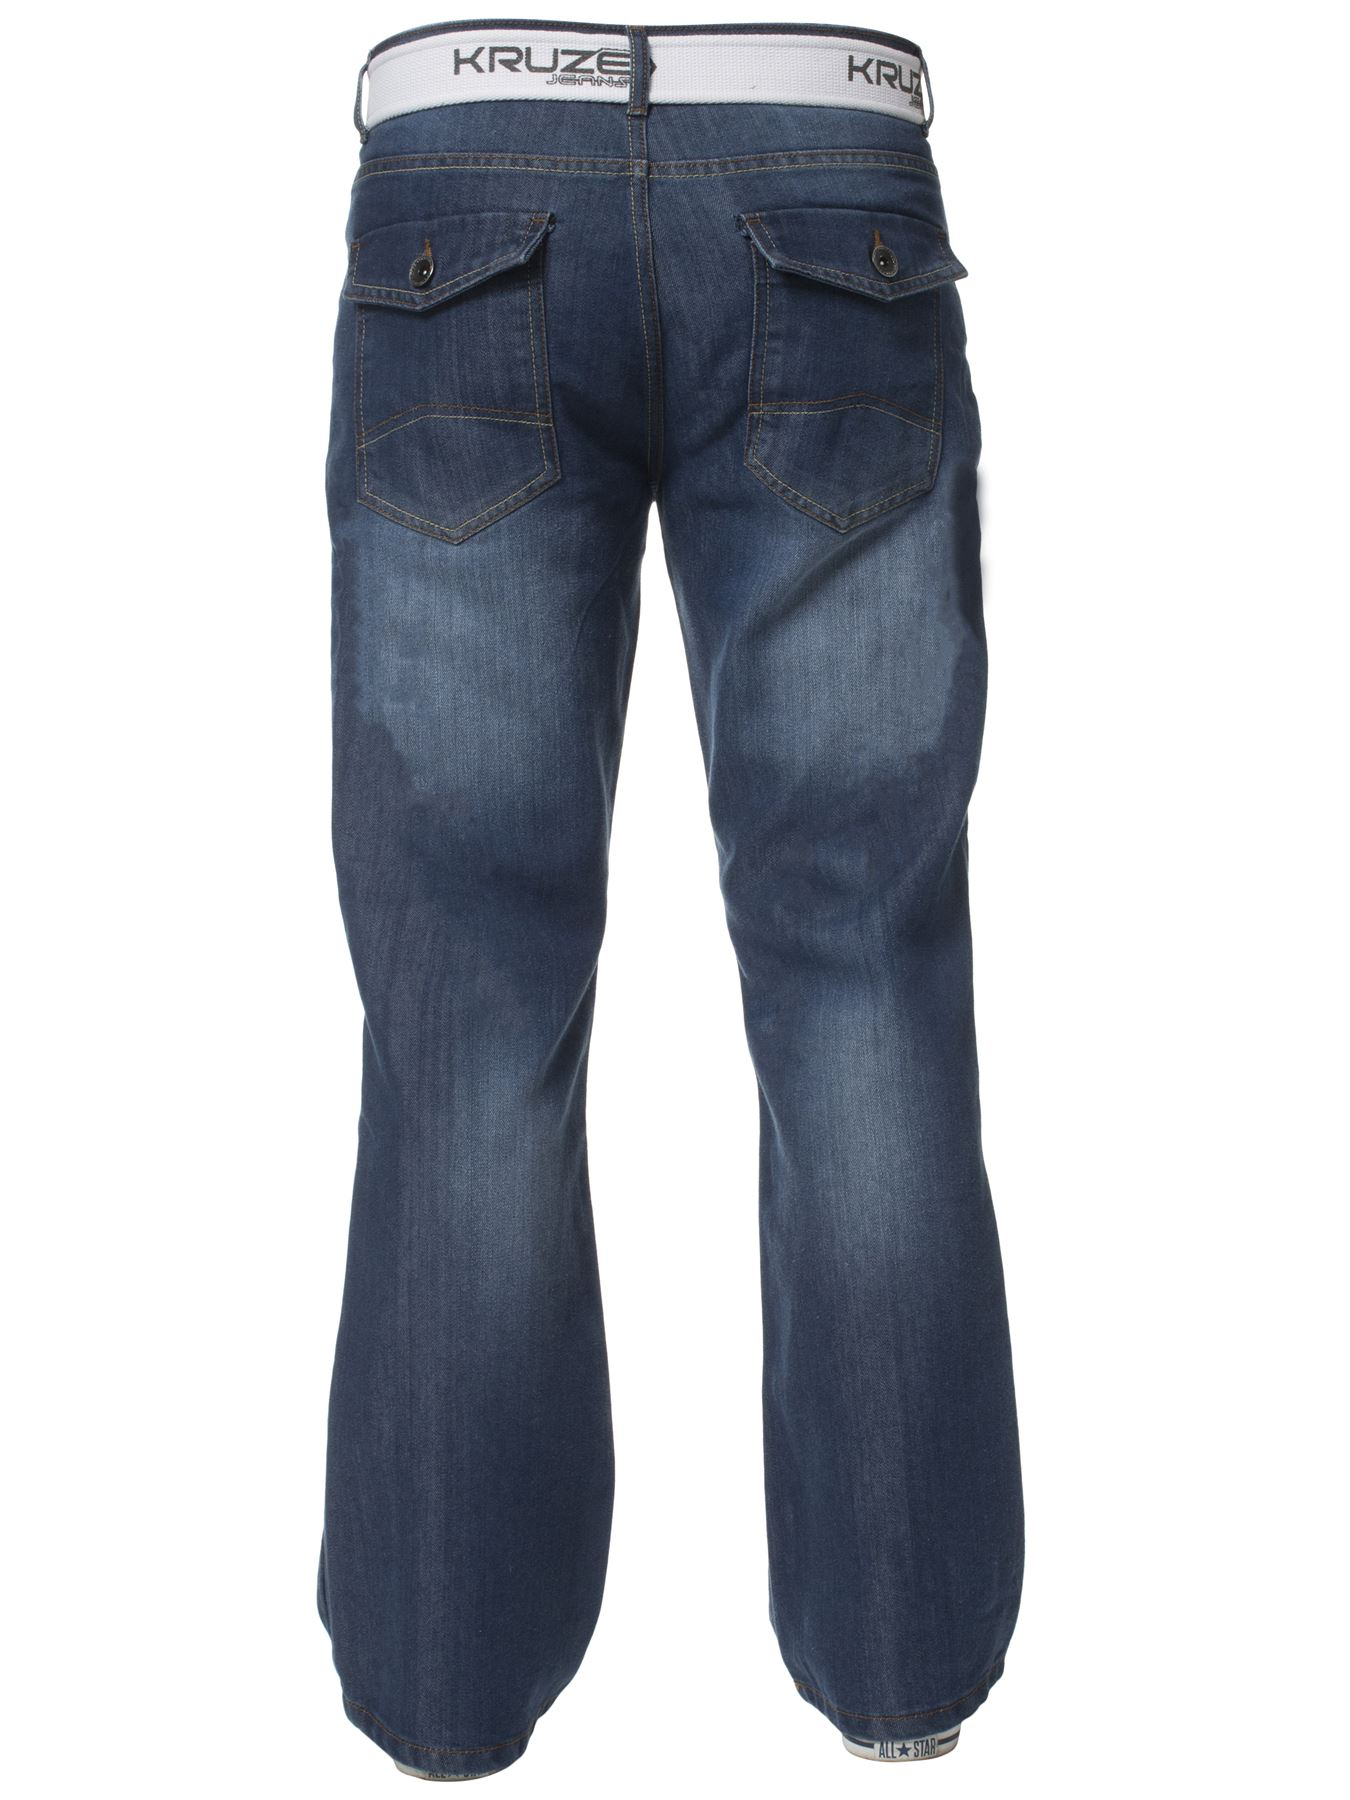 Kruze-Mens-Bootcut-Jeans-Flared-Wide-Leg-Denim-Pants-Big-Tall-King-All-Waists thumbnail 7